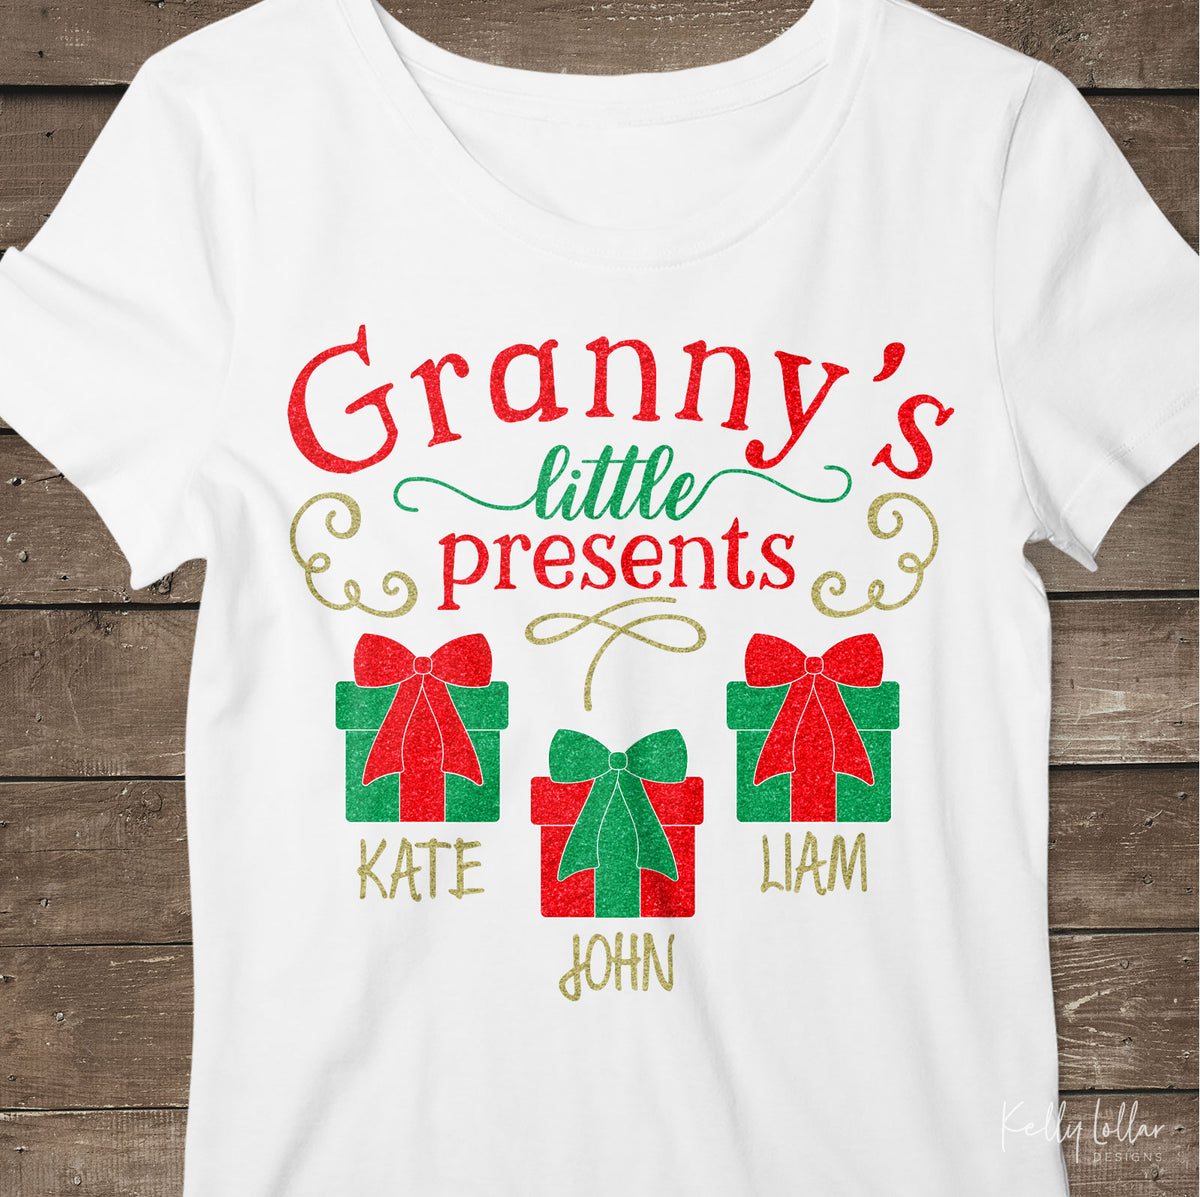 Granny's Little Presents| Christmas Shirt Design for Granny with Gift Boxes for Children's Names | SVG DXF PNG Cut Files